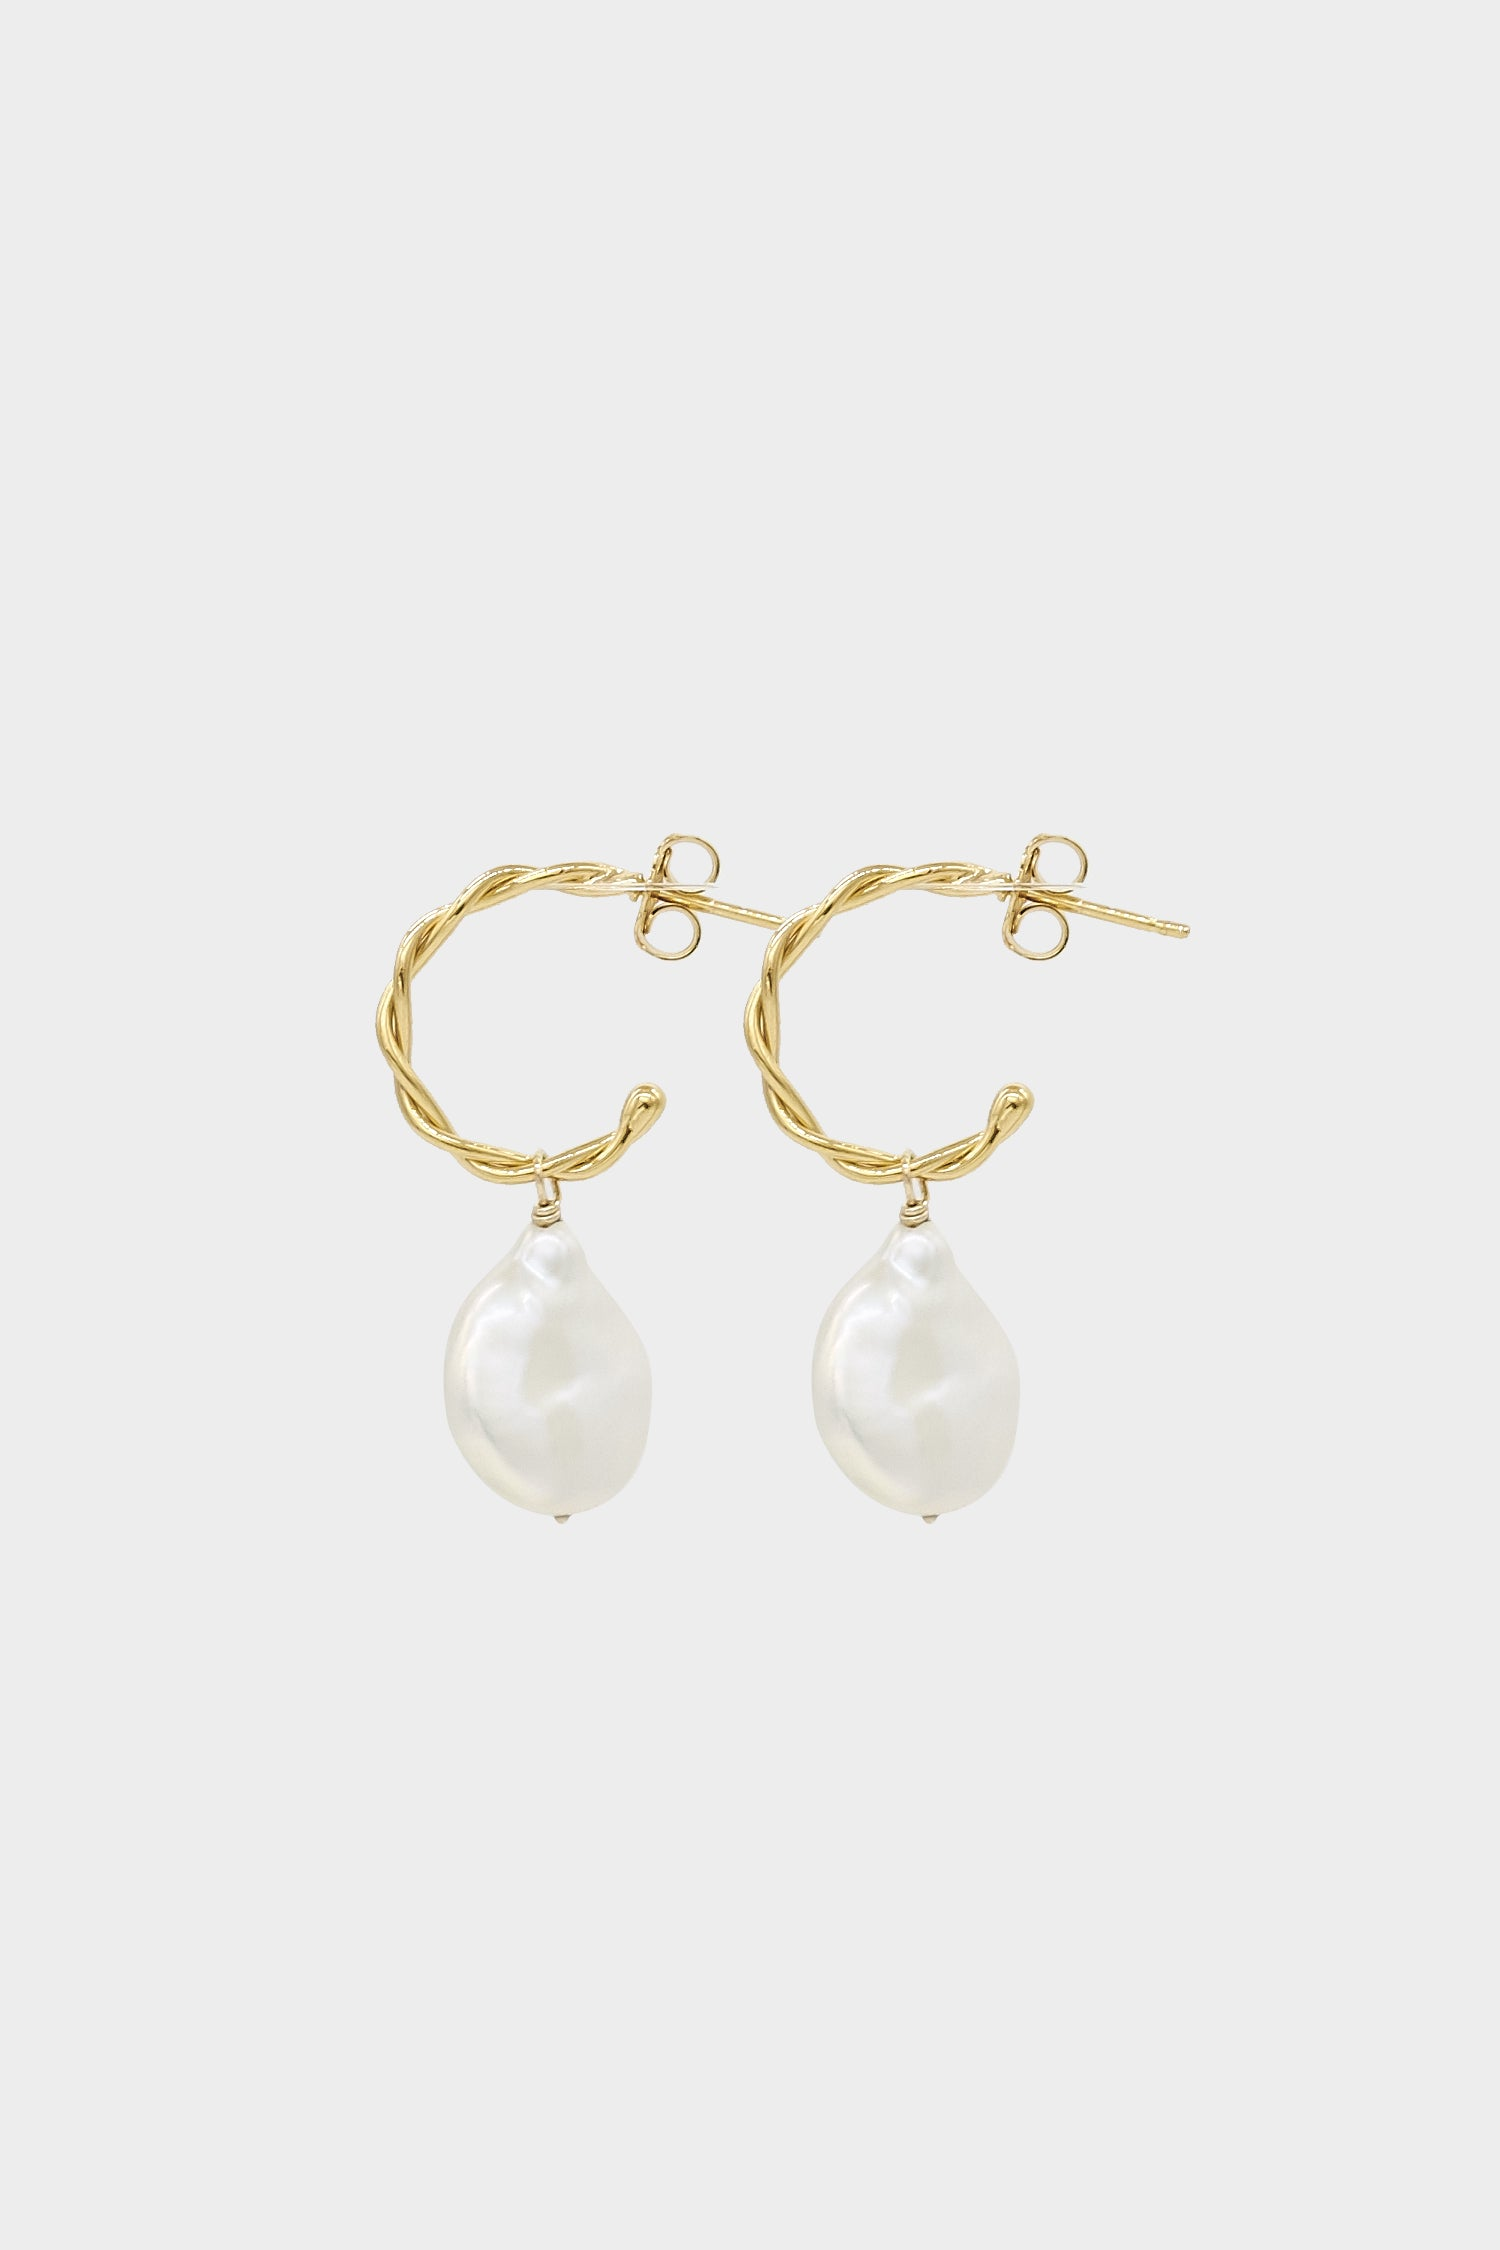 Helix Pearl Earrings Small | 9K Yellow Gold